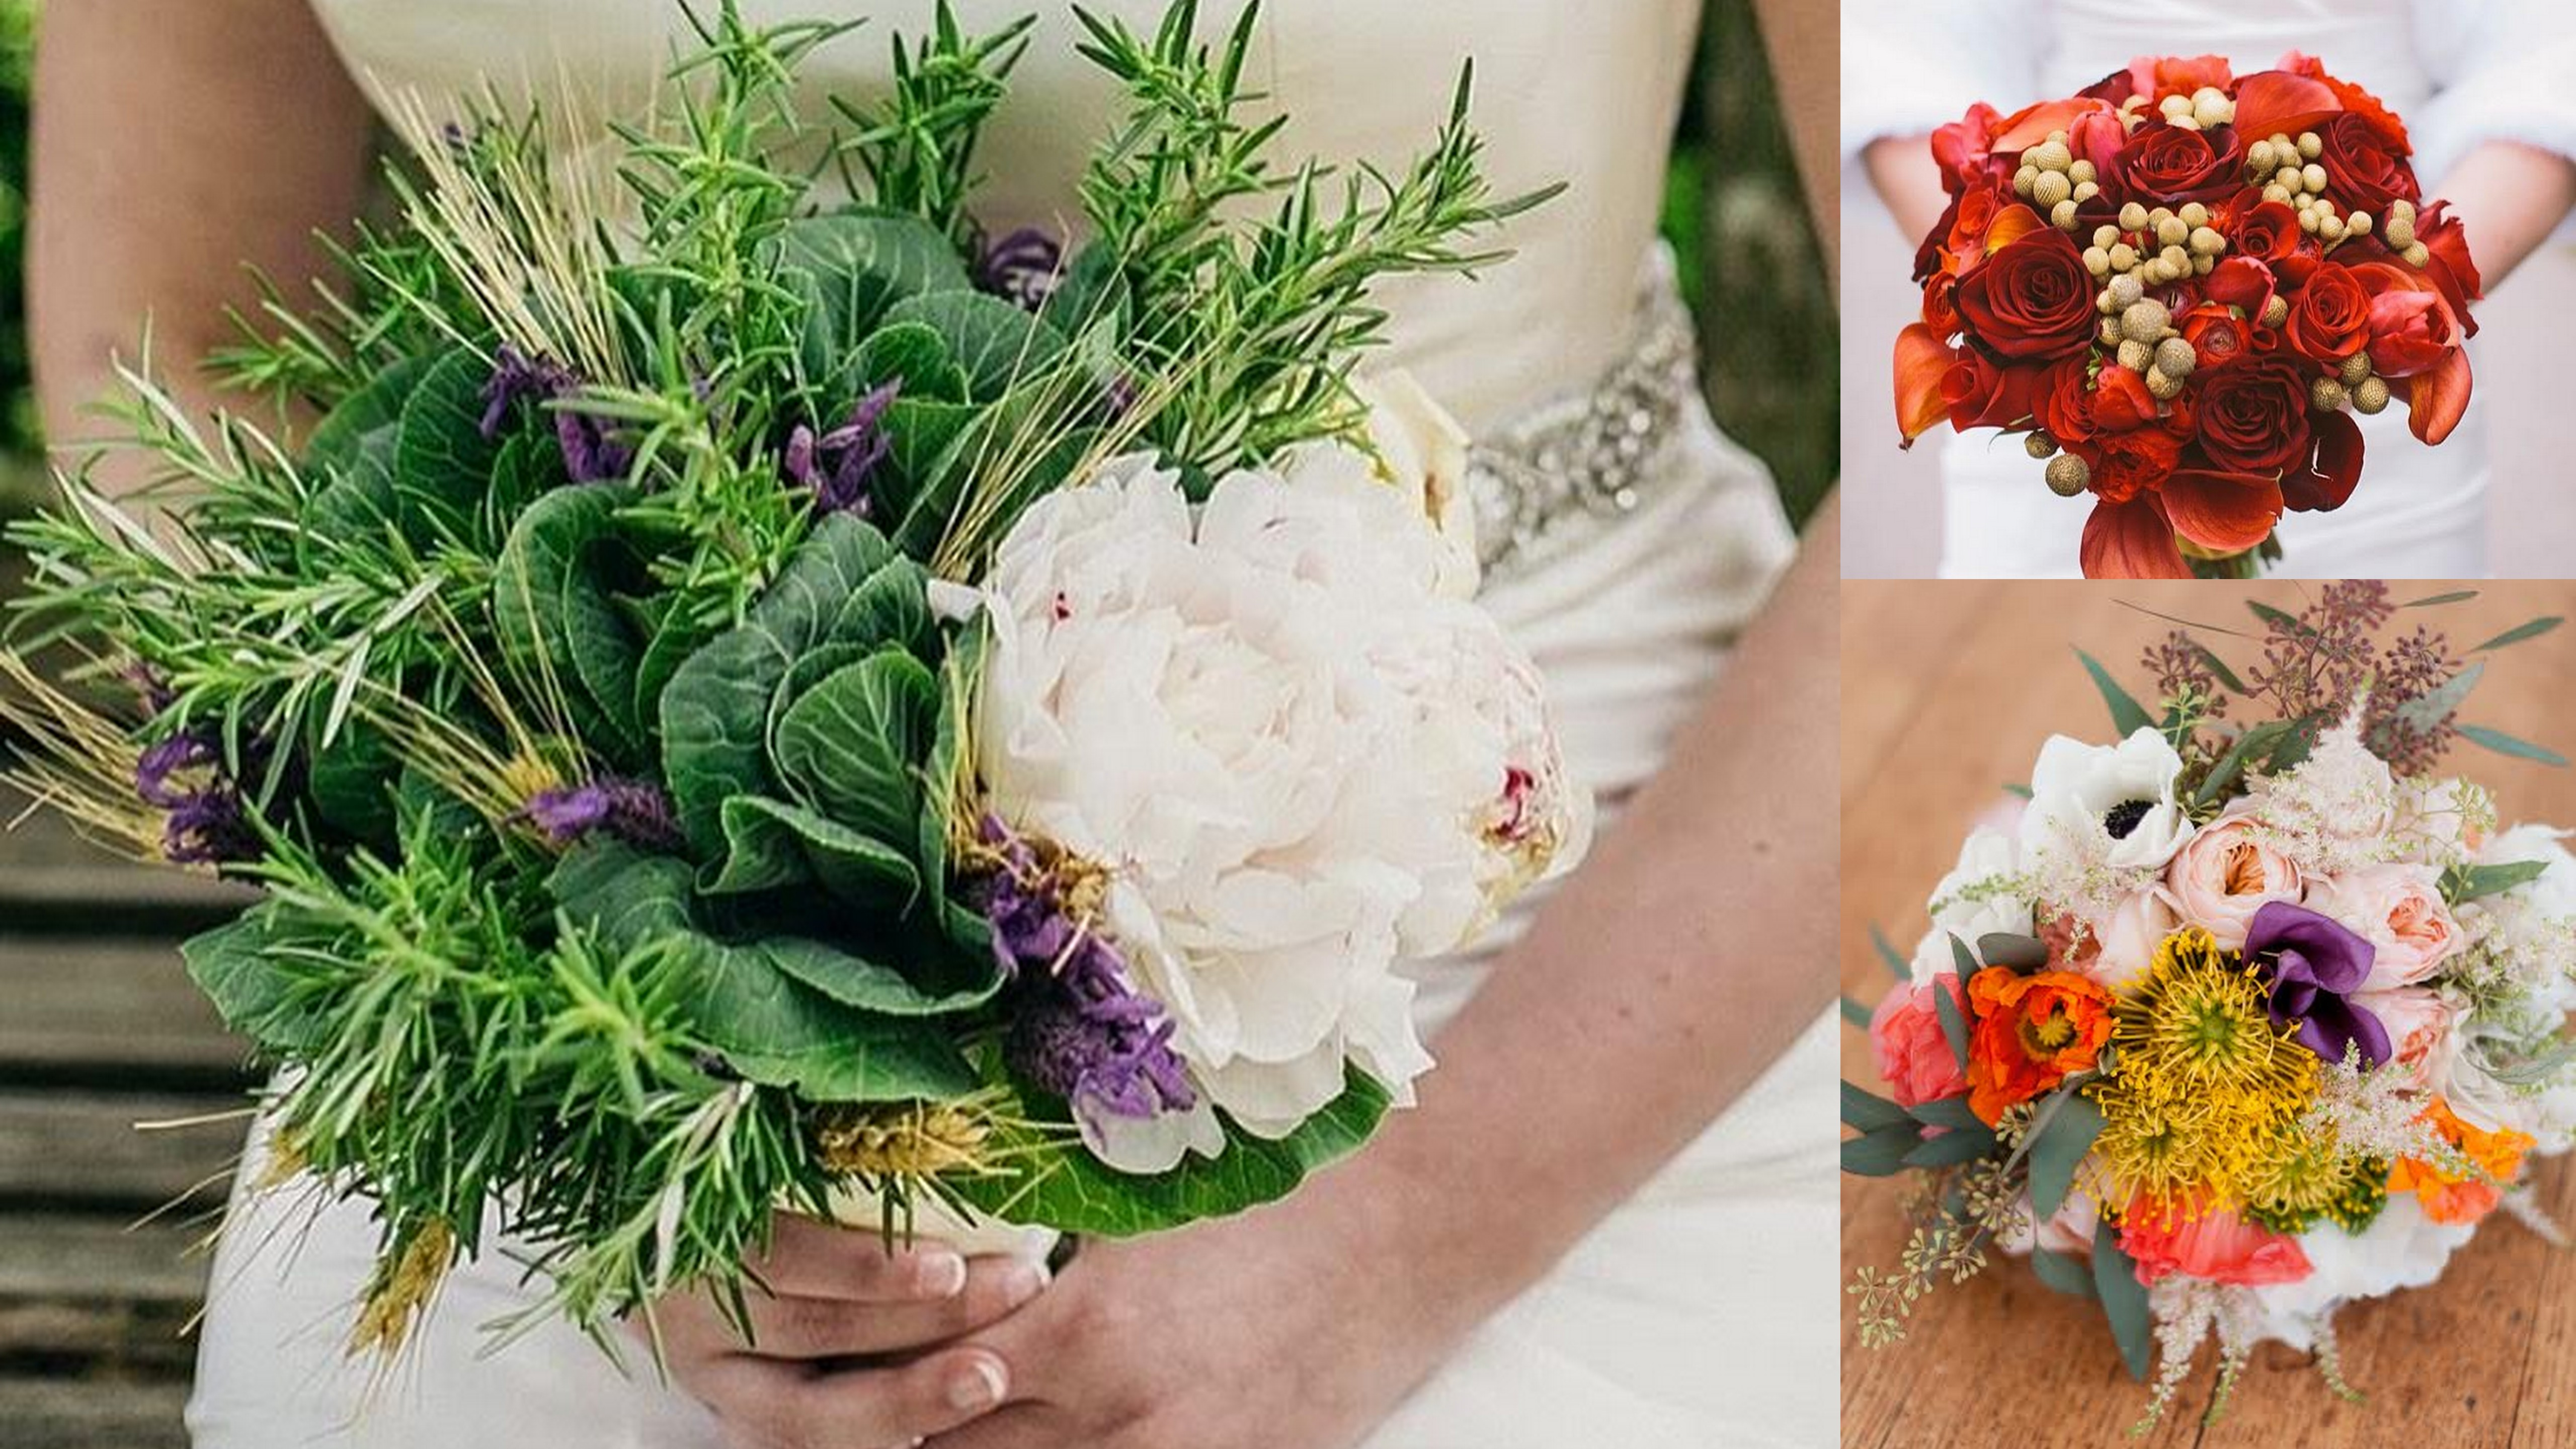 Bride-Wedding-Bridal bouquet-DC Wedding-Engaged-Wedding-Style-Red-Bouquet-Groom-Wedding Style-Wedding-Planning-Wedding-Flowers-Wedding-Day-Documentary-Associates-Wedding-Planner DC-Wedding-Florist-Event-Designer-Yellow-pin cushions-lisianthus-poppies-astilbe-roses-anemones-seeded-eucalyptus-greenery-colorful-Romantic-wedding-Romantic-bouquet-Dahlias-Dusty-miller-Hypericum-berries-Ornamental-kale-Lavender-Rosemary-Peonies-Dumbarton-House-Wheat-Love-Life-Images